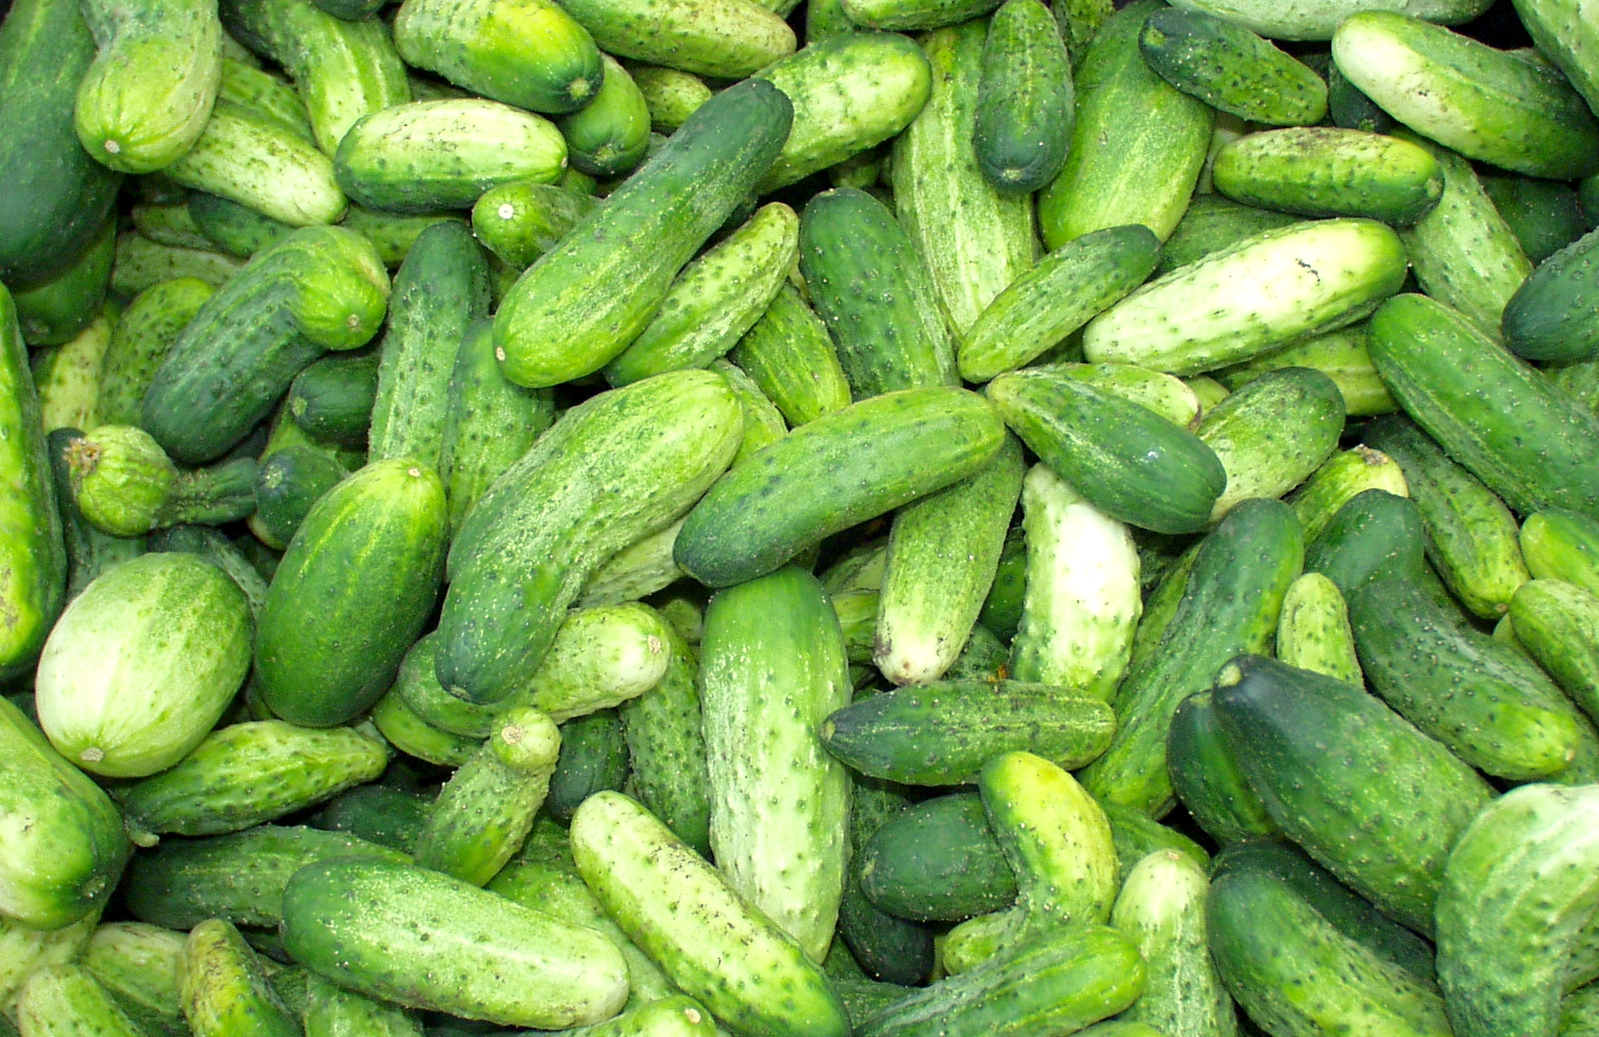 Pickling cukes from Stoney Plains. Photo copyright 2009 by Zachary D. Lyons.